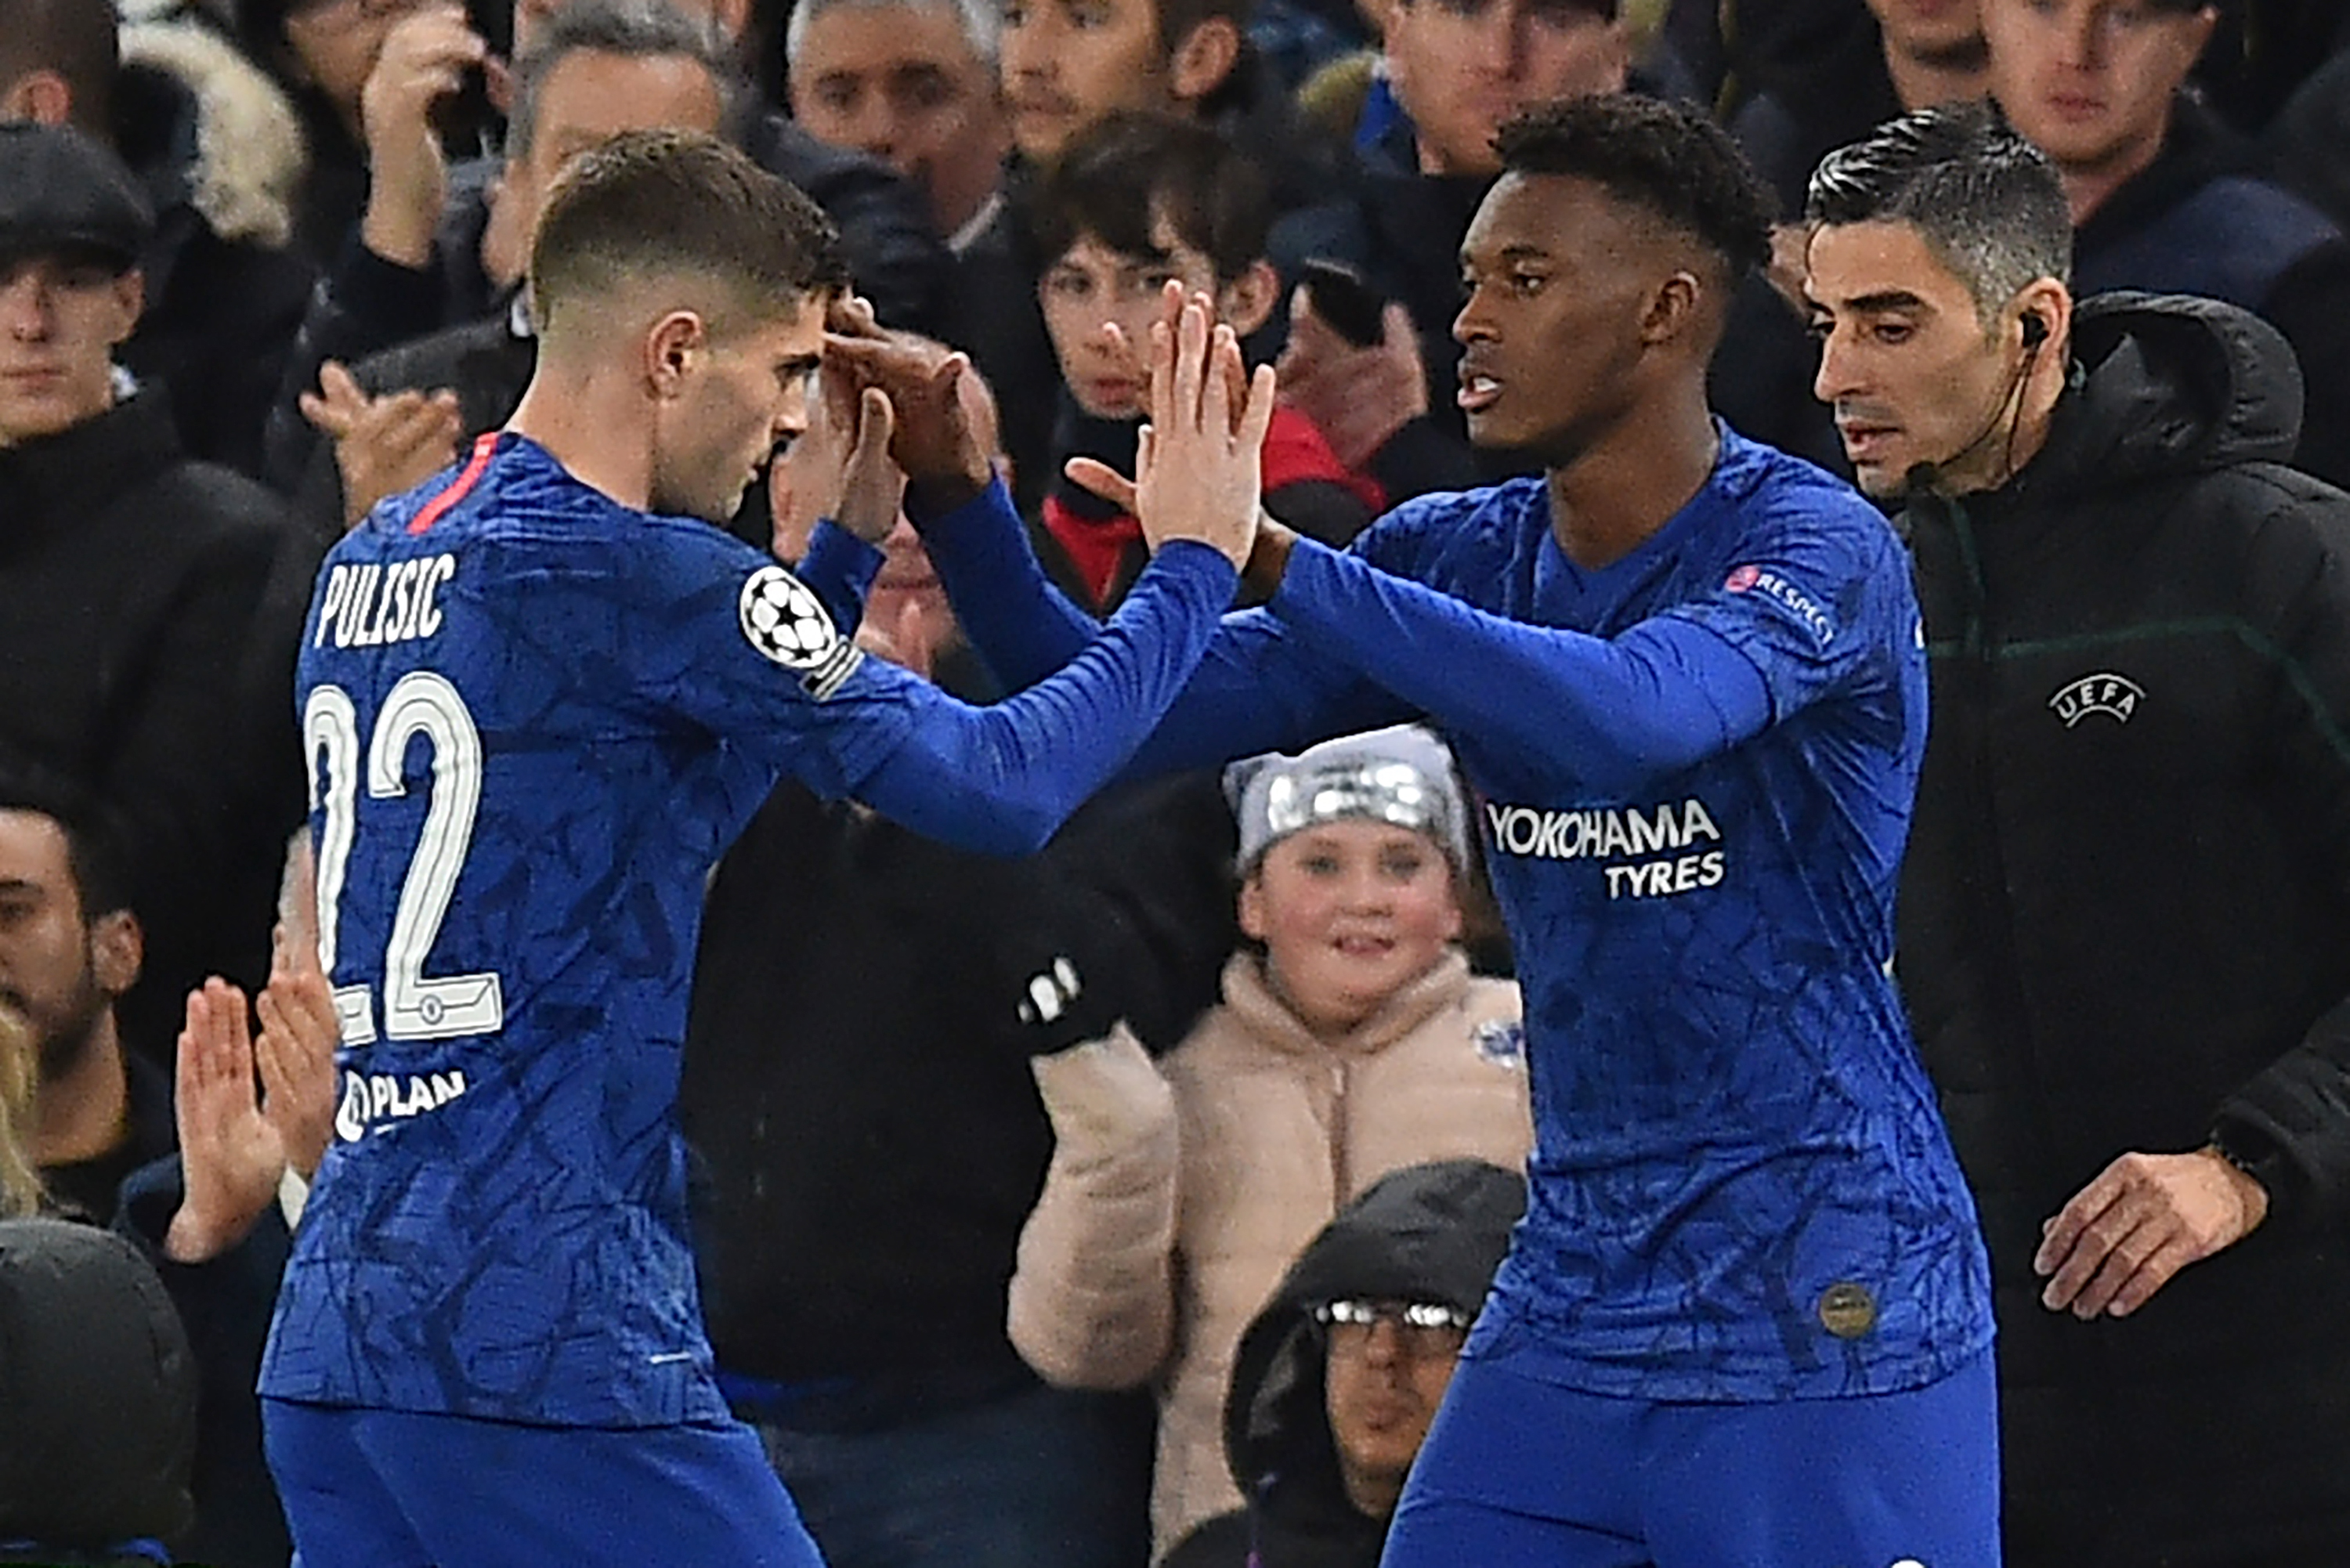 No Pulisic and Hudson-Odoi for Chelsea (Photo by GLYN KIRK/AFP via Getty Images)